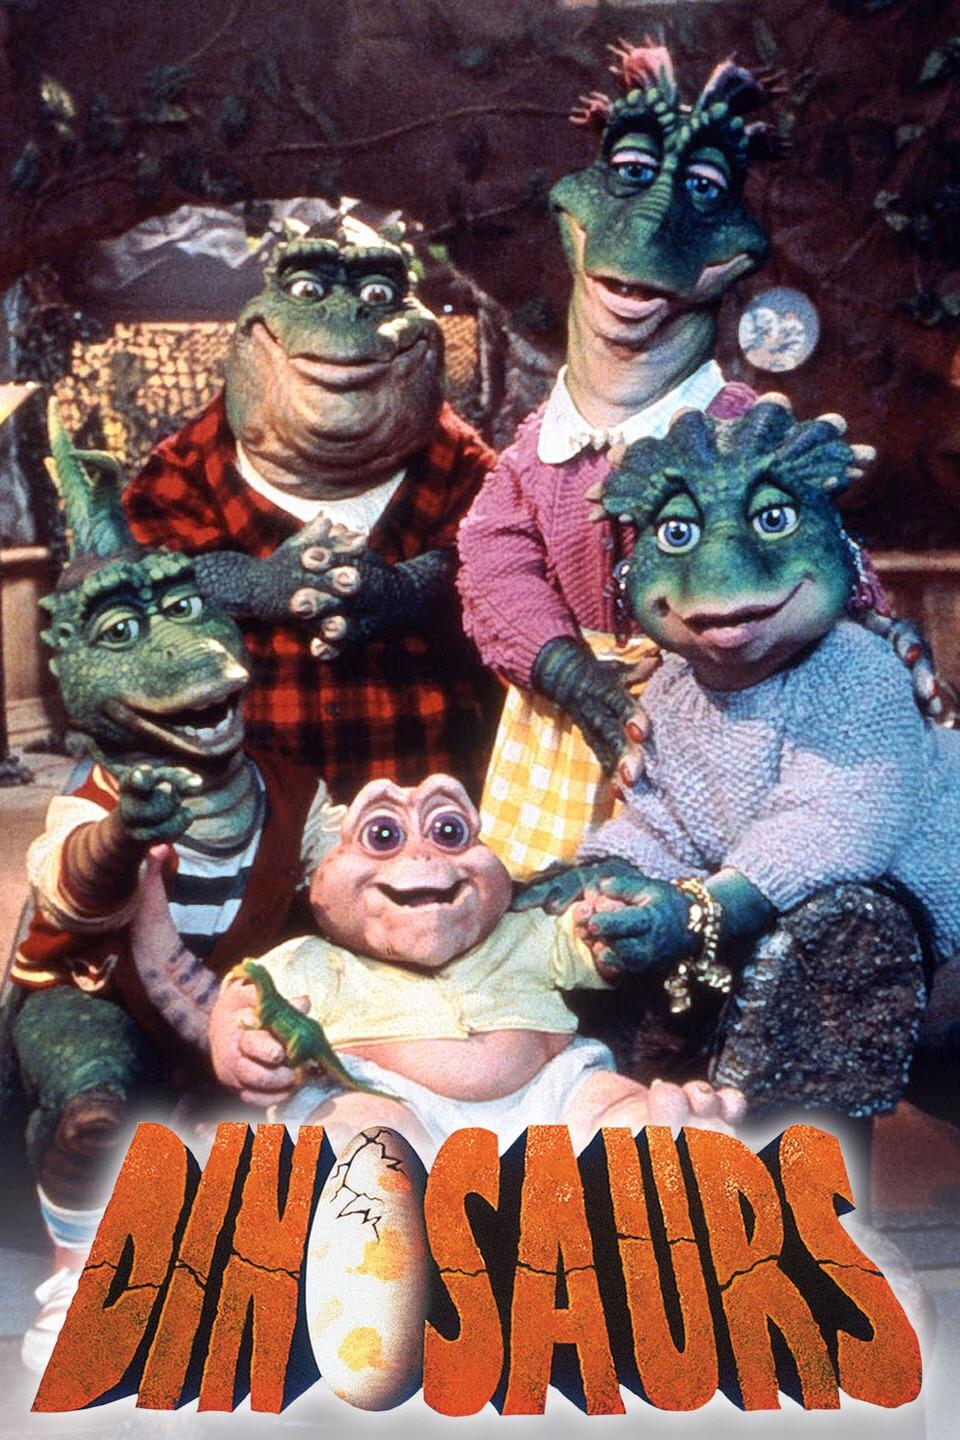 Advertisement for the 1991 series Dinosaurs